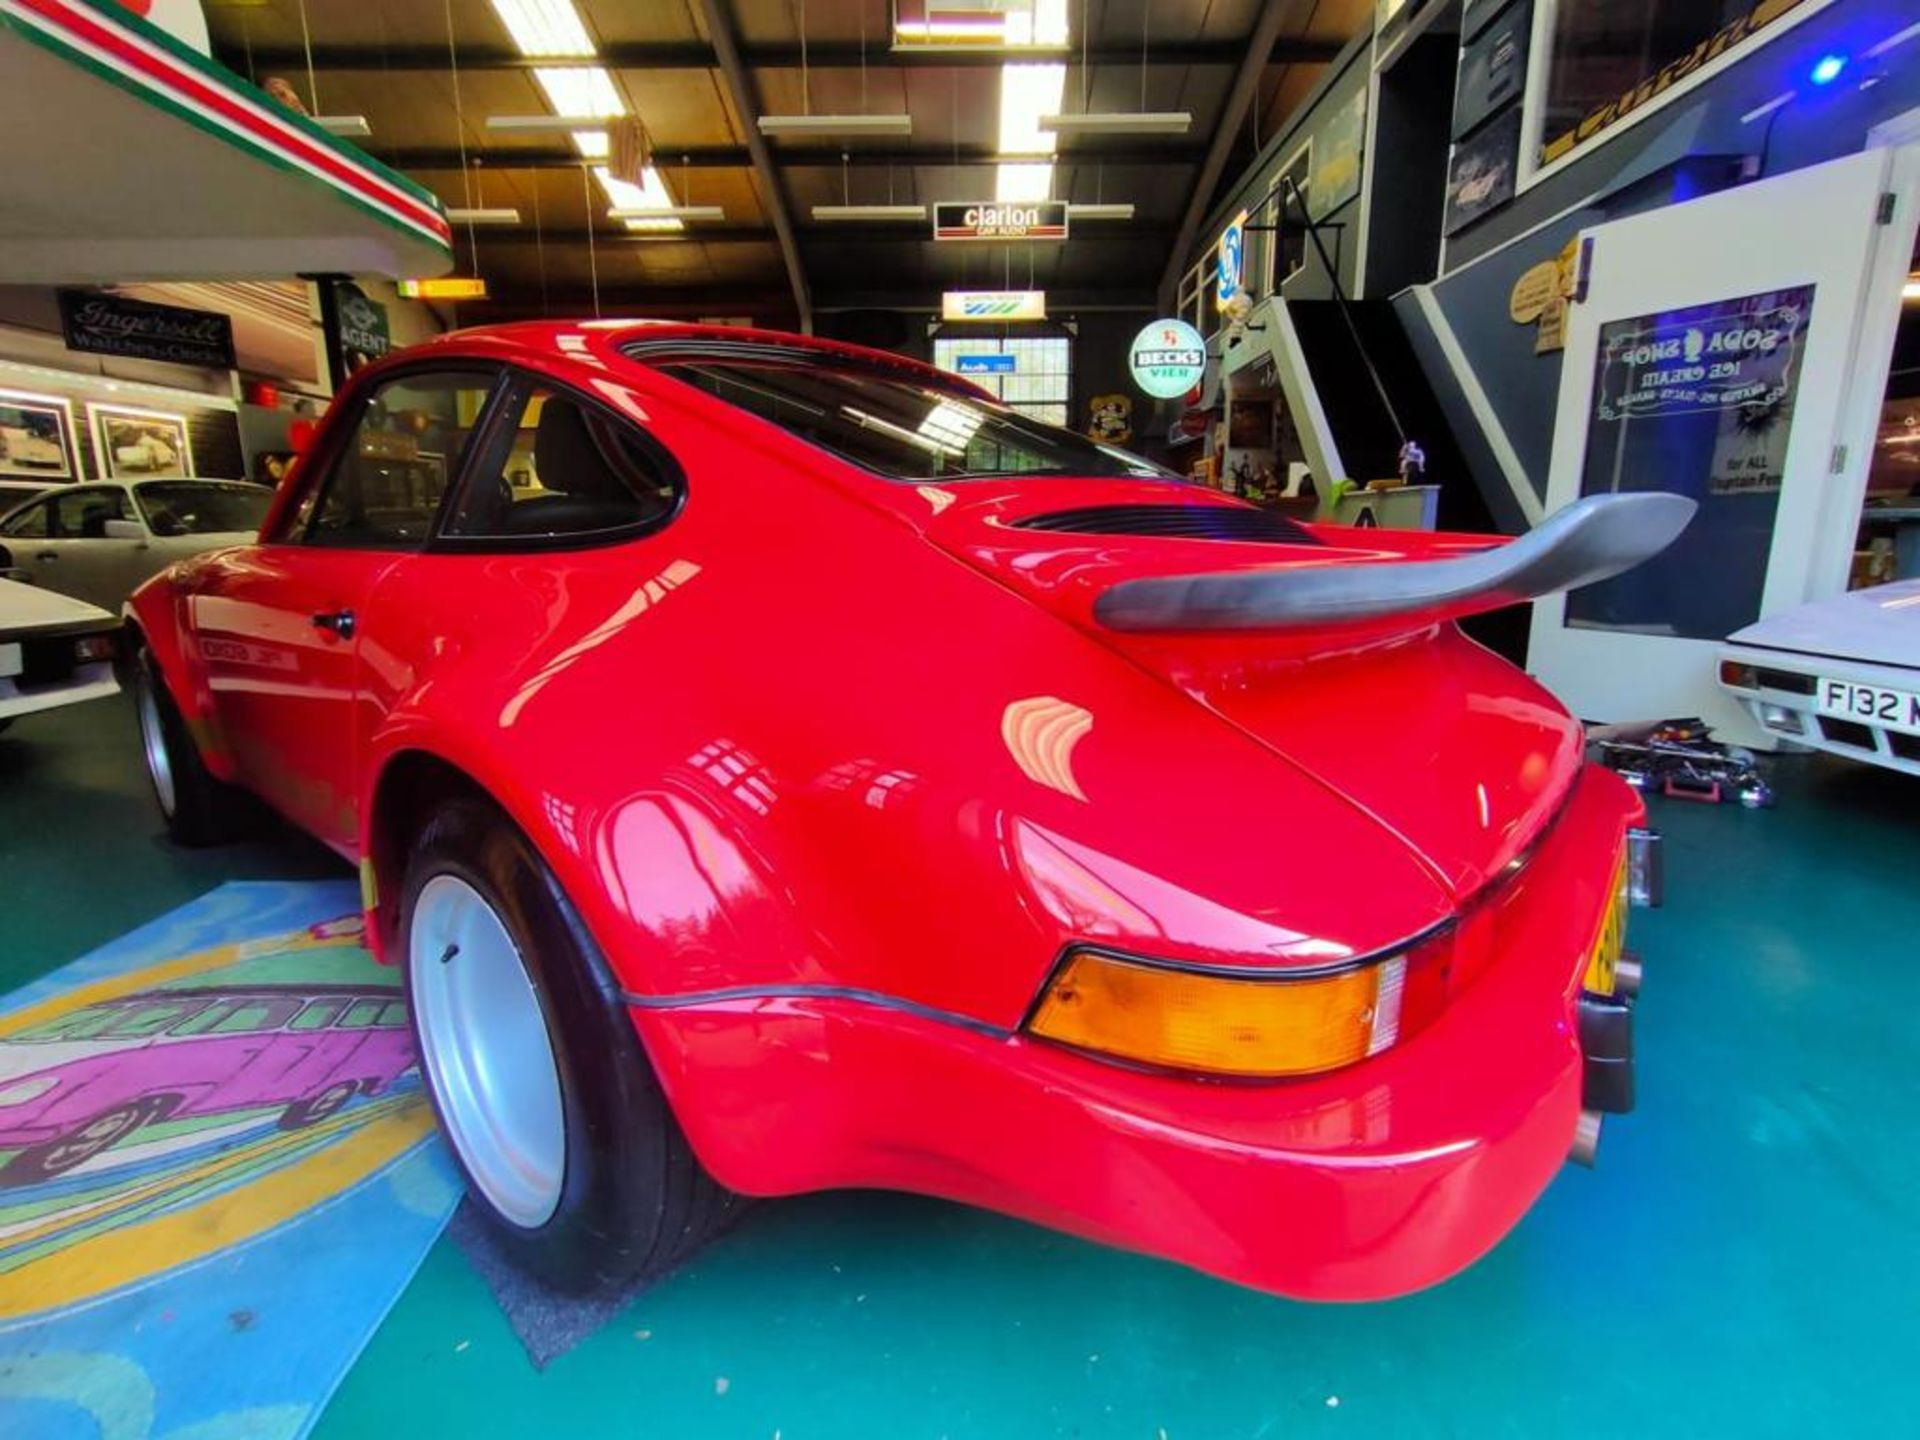 1980 Porsche 911 sc sport but has been fully rebuilt to be identical to a 1974 911 rsr *NO VAT* - Image 5 of 12